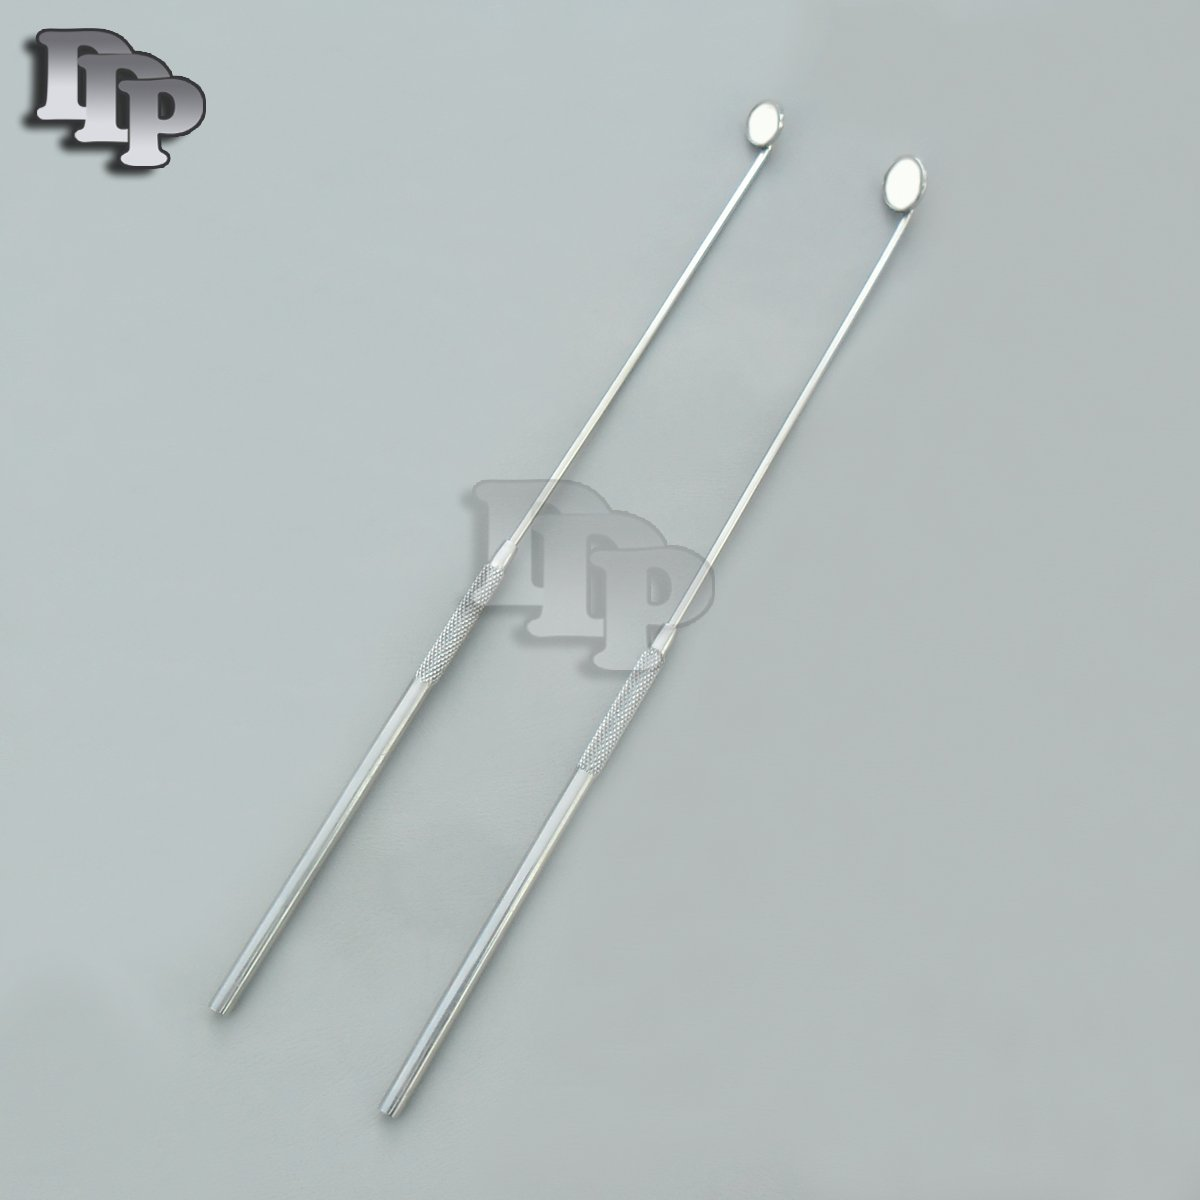 SET OF 2 LARYNGEAL BOILABLE HYGIENE DENTAL MIRRORS WITH HANDLE #000 #00 (DDP QUALITY)